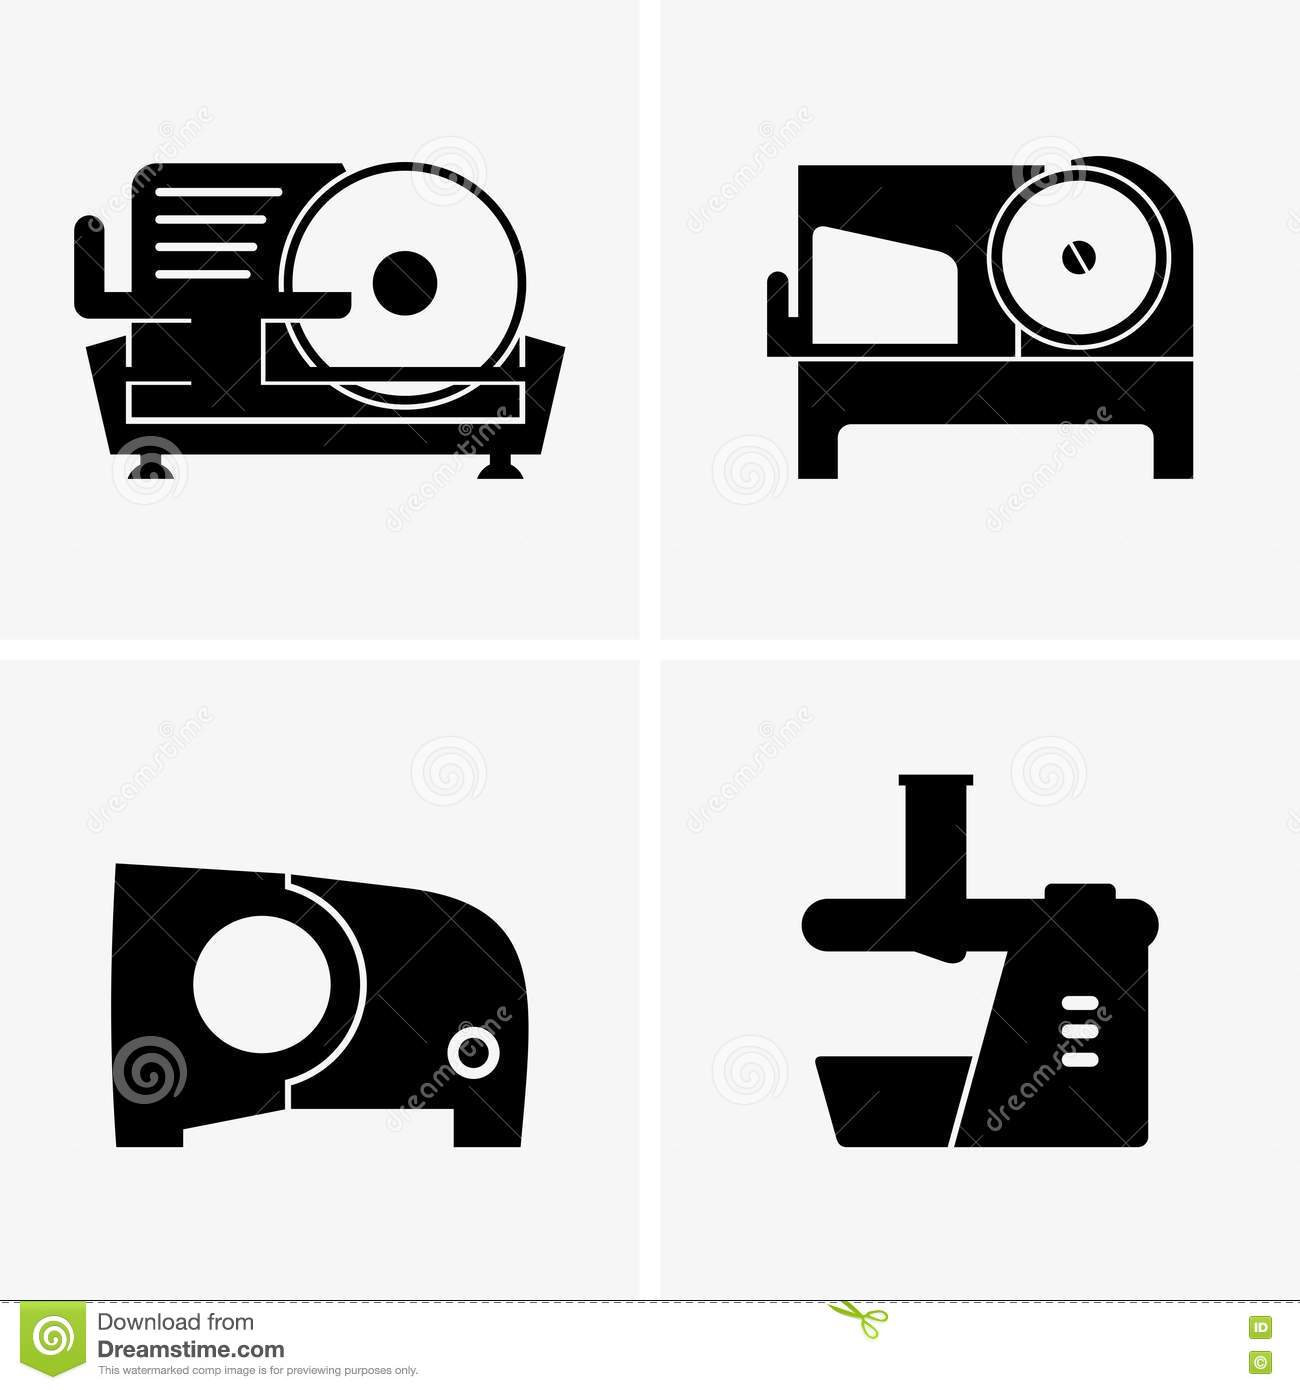 Semi Automatic Meat Slicer Stock Vector Illustration Of